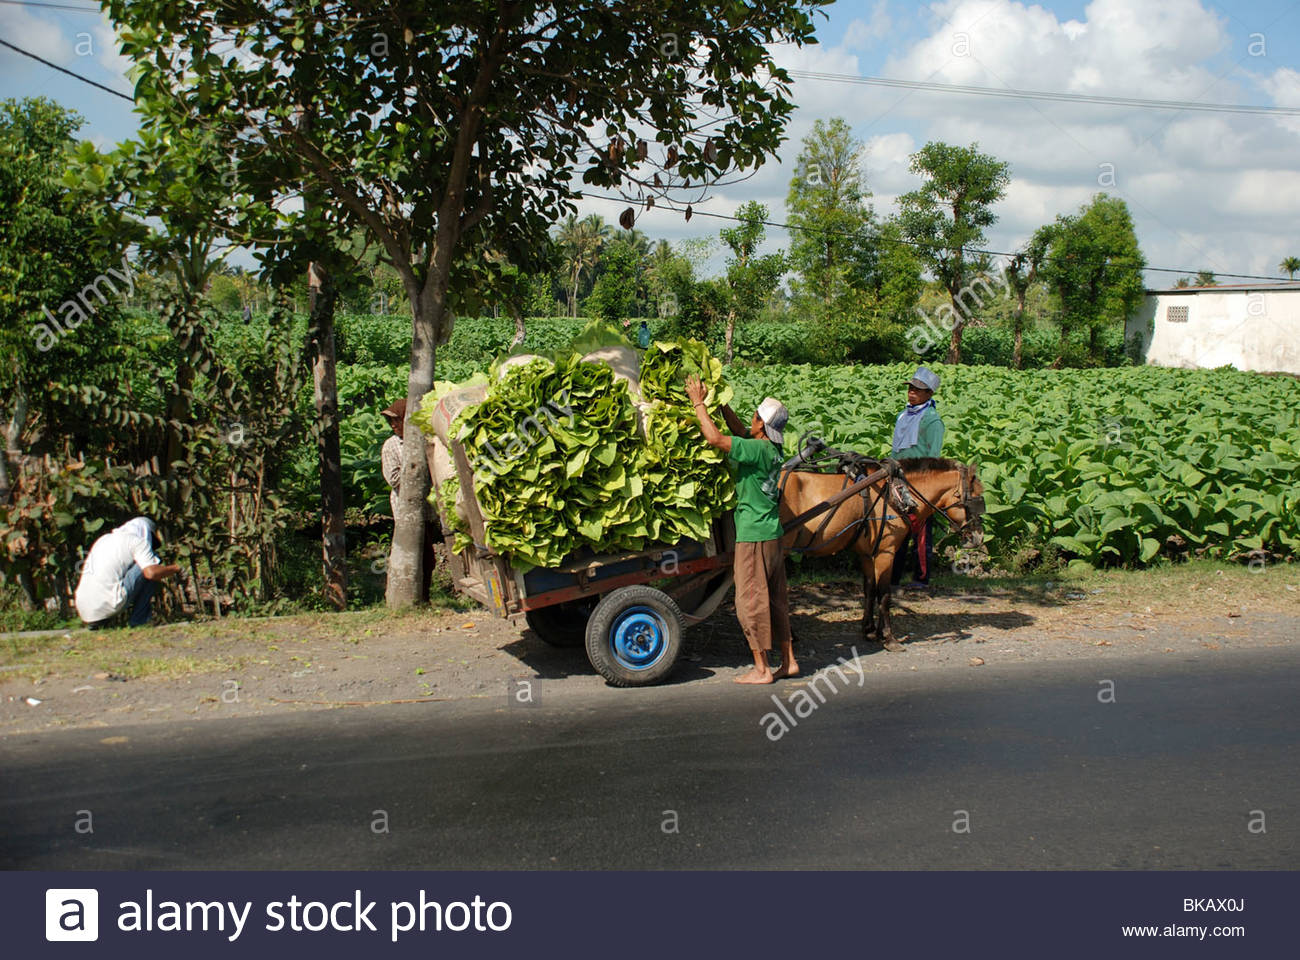 Man ties up a load of bundled harvested tobacco leaves Kopang Lombok Barat NTB Indonesia - Stock Image